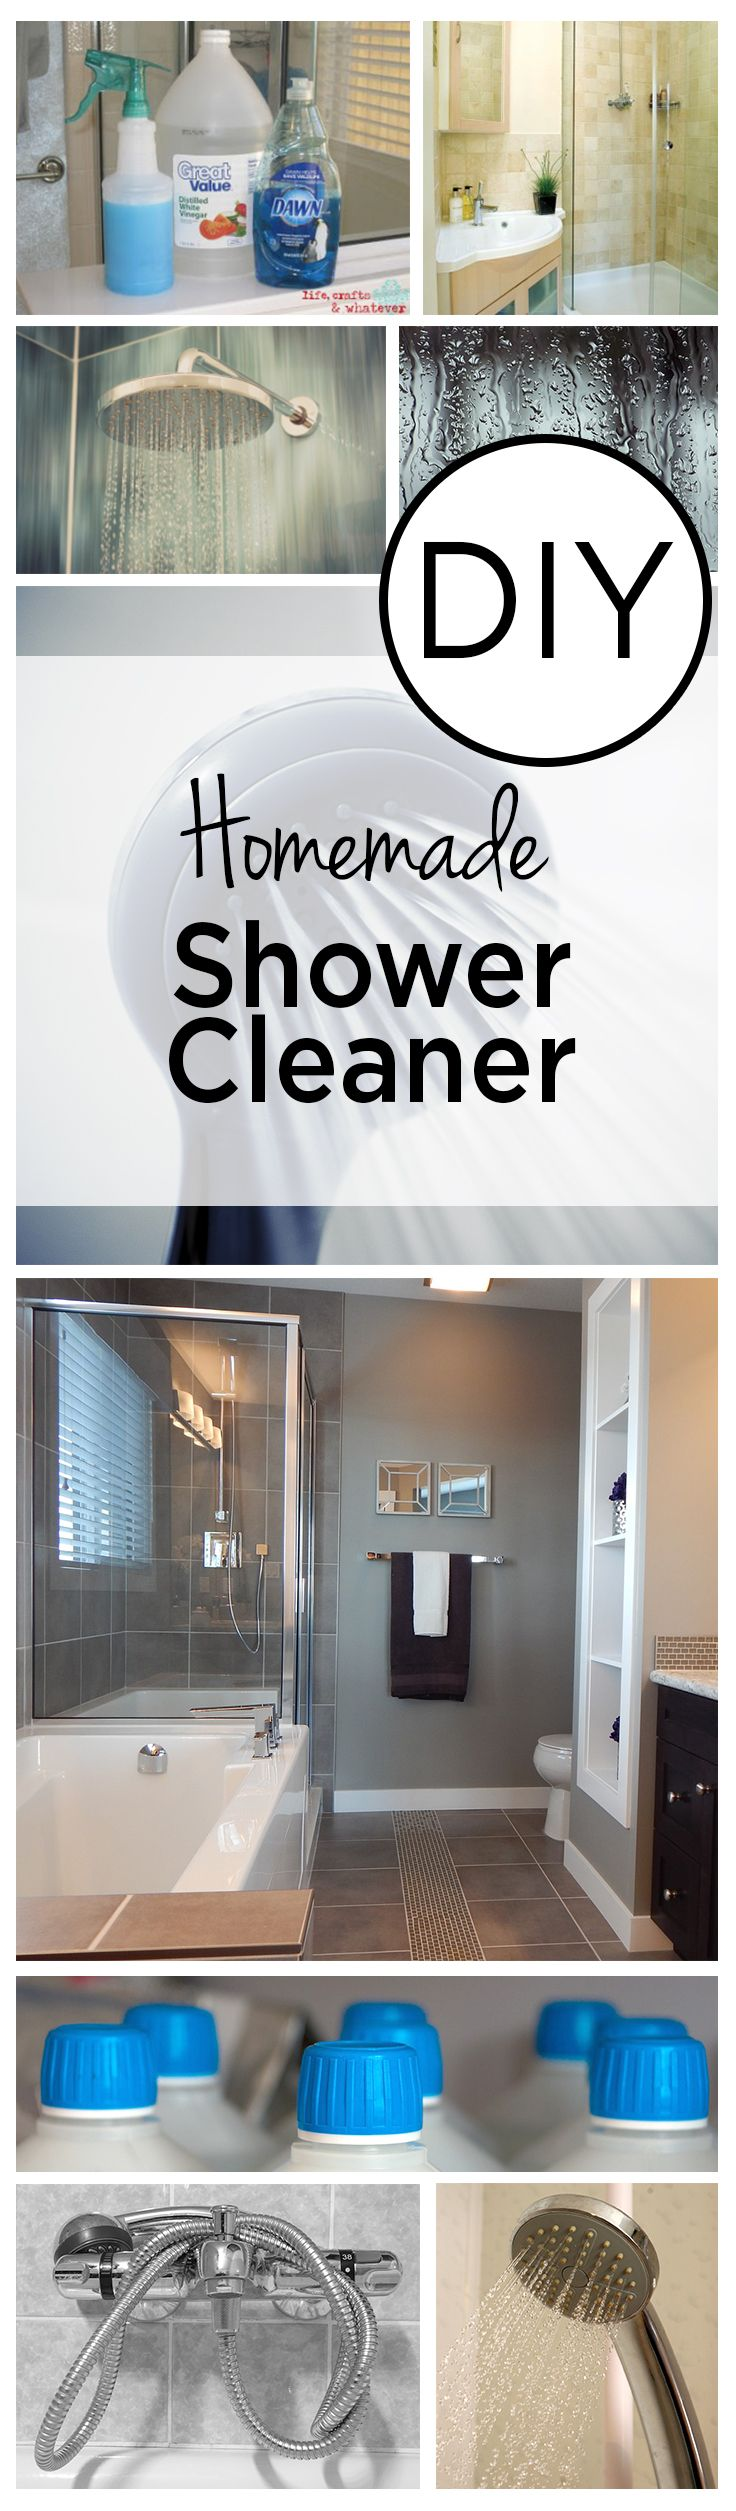 1000 Ideas About Homemade Shower Cleaner On Pinterest